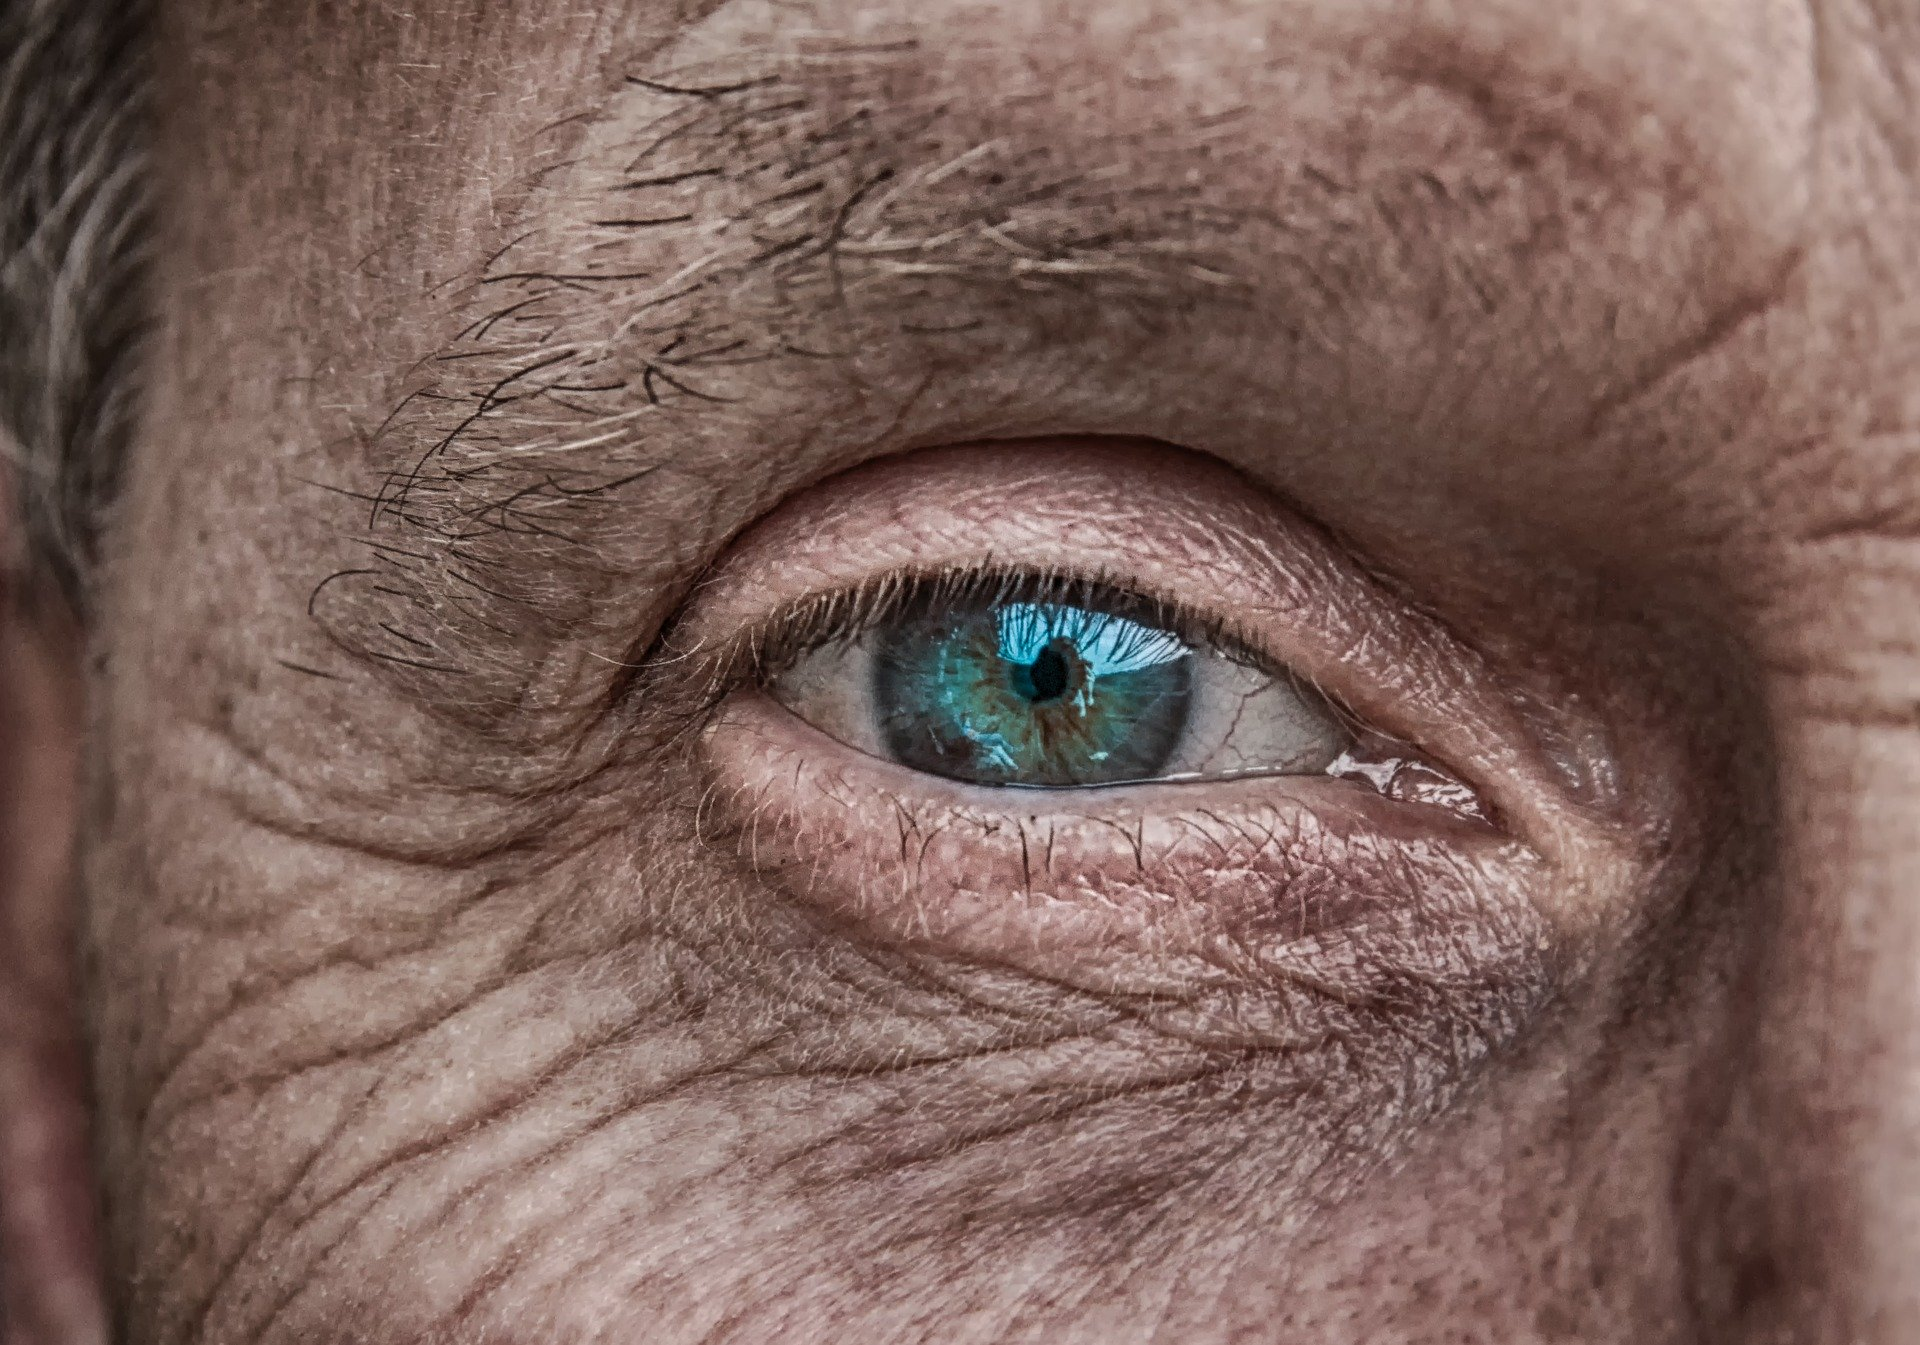 A close up on the eye of an older man